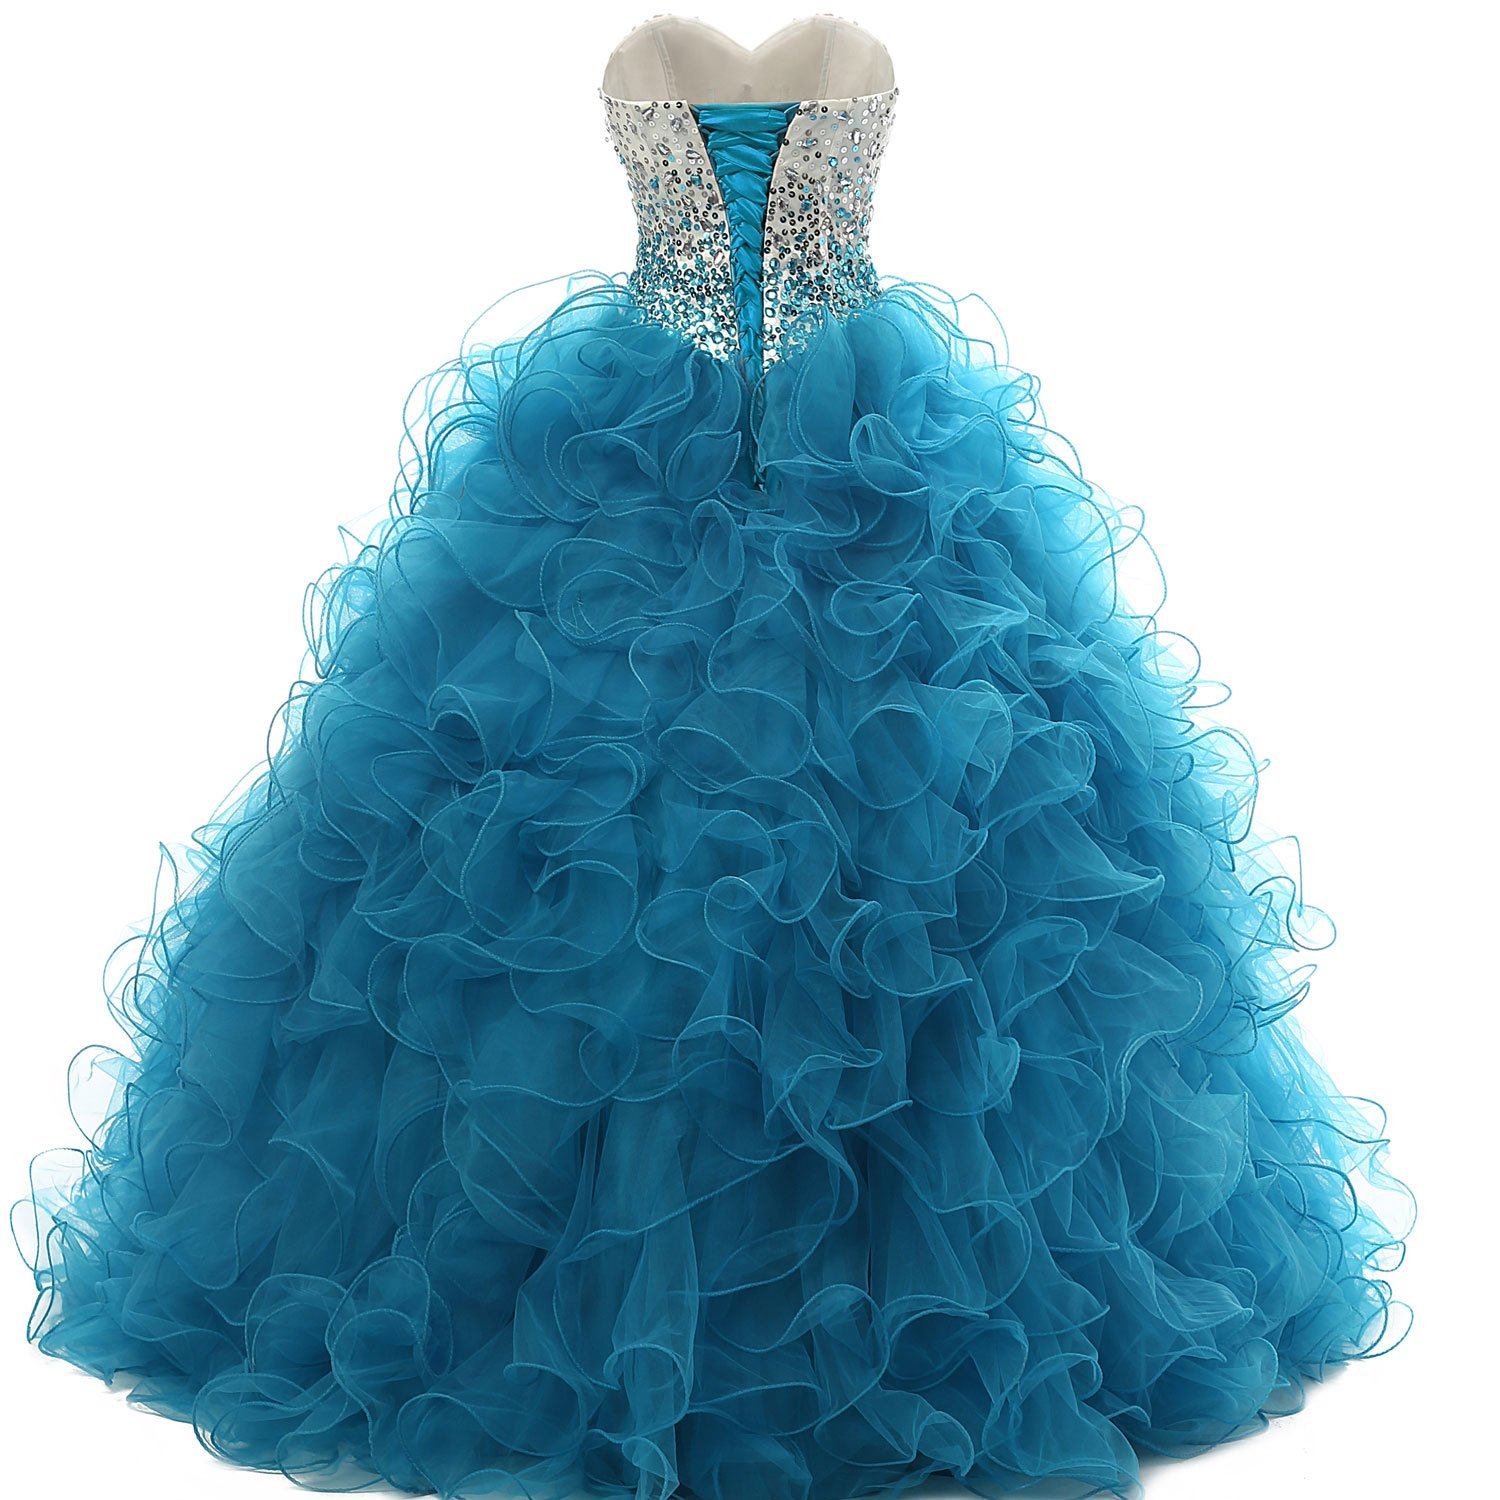 Dressytailor Ballgown Sweetheart Quinceanera Dress Prom Dress with Beading by Artie dress (Image #4)